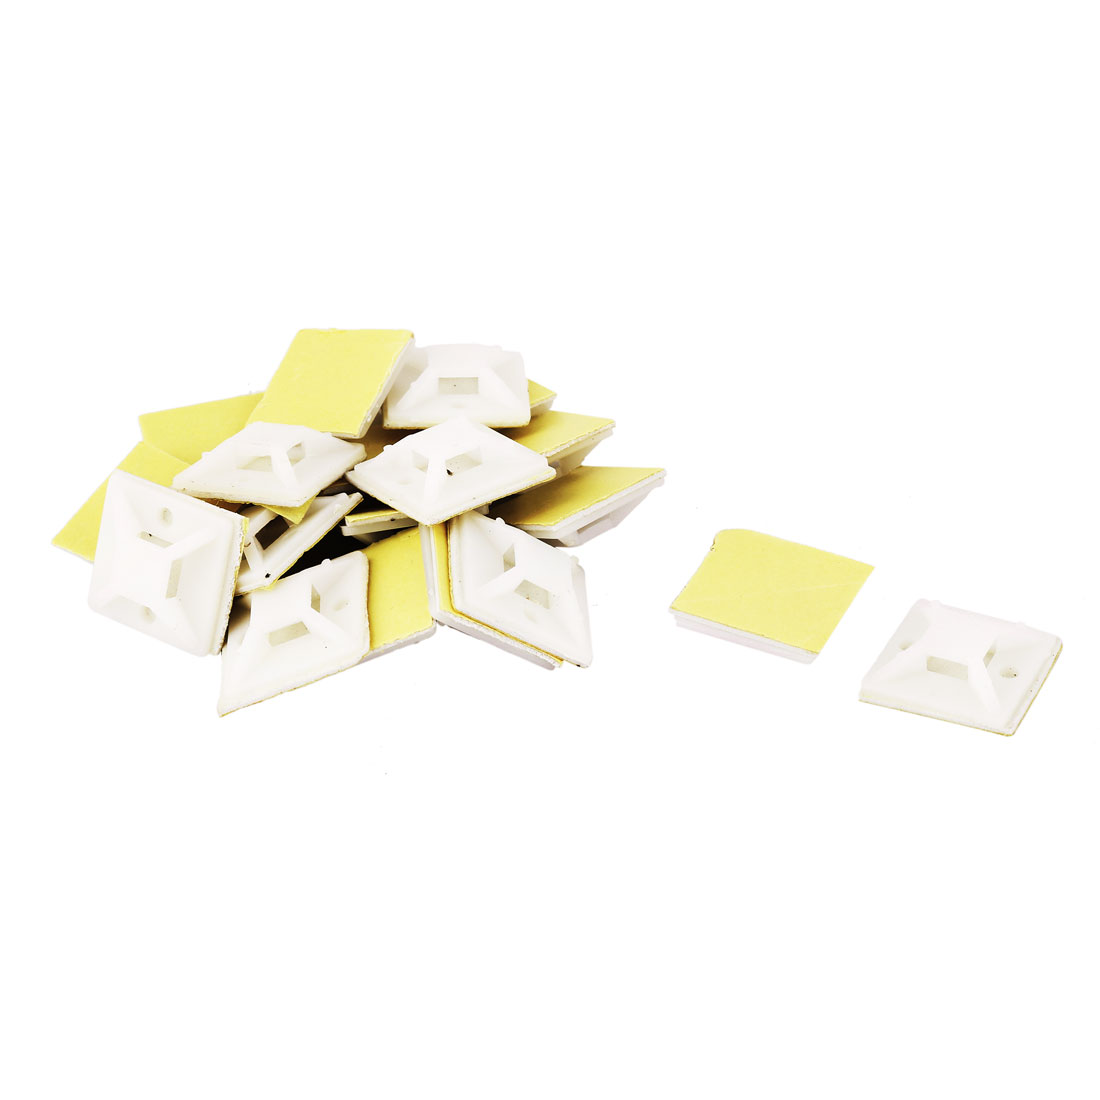 Wall Plastic Self Adhesive Cable Tie Mount Base White 25mm x 25mm x 8mm 20 PCS